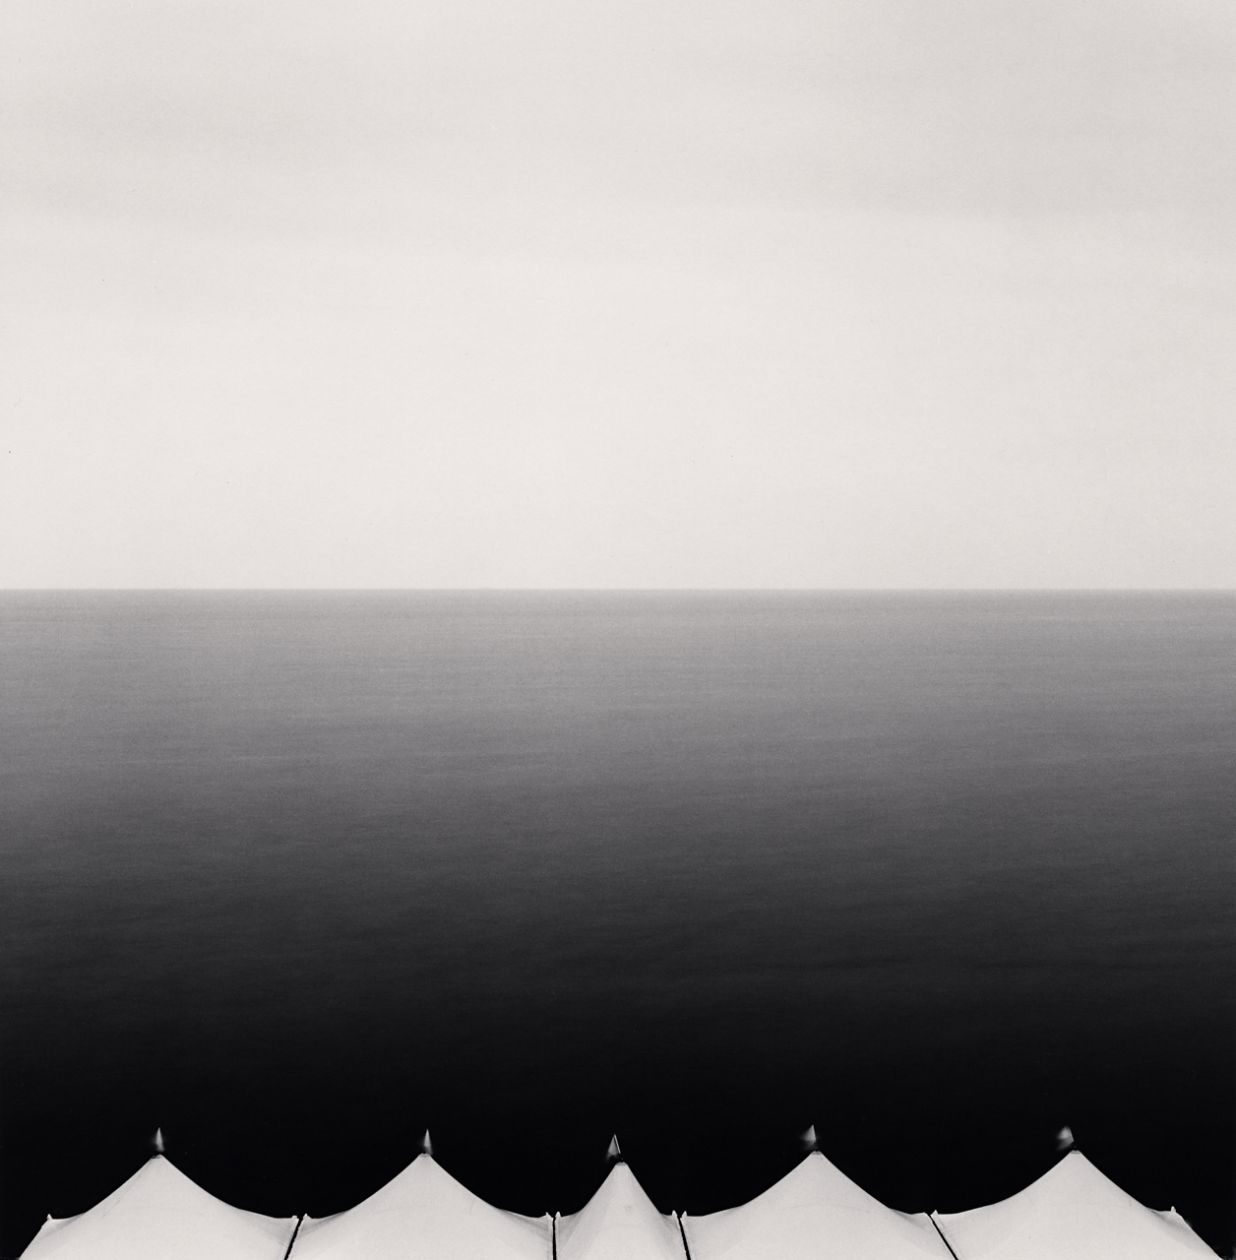 Five Canopies, Granville (2007) by Michael Kenna